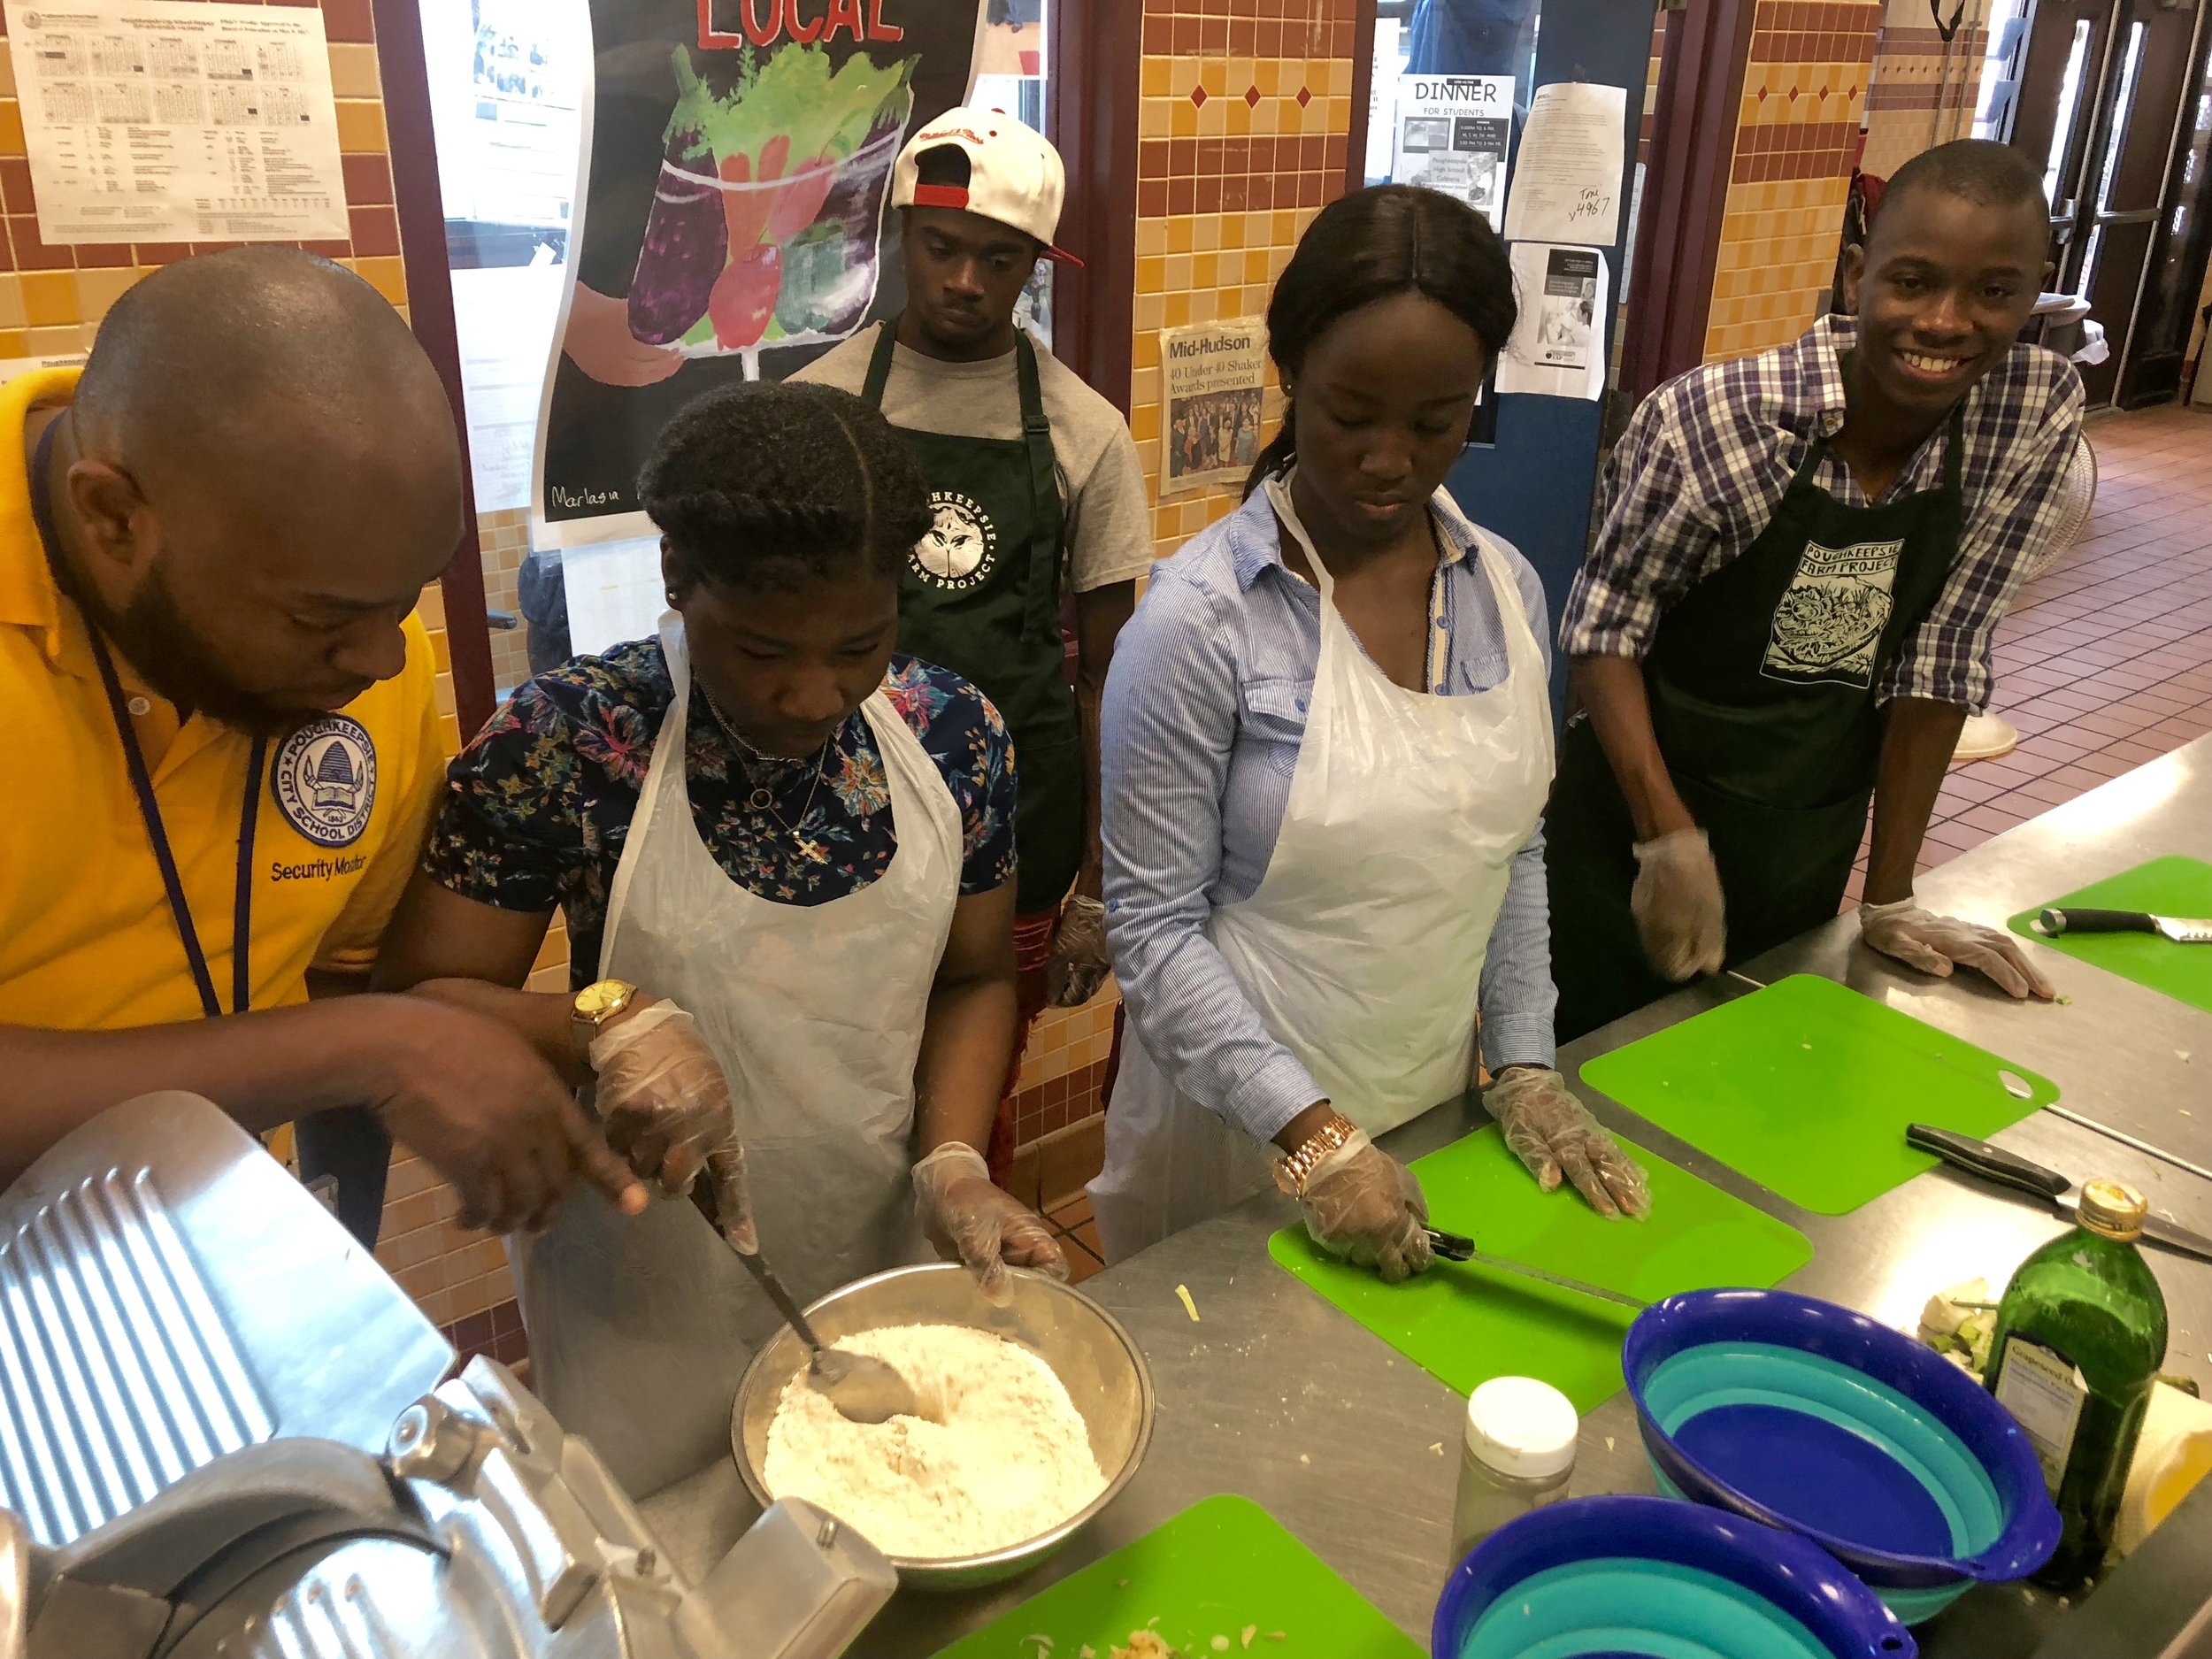 Chef Key and Chef Dave lead cooking workshops for teens at Poughkeepsie High School.